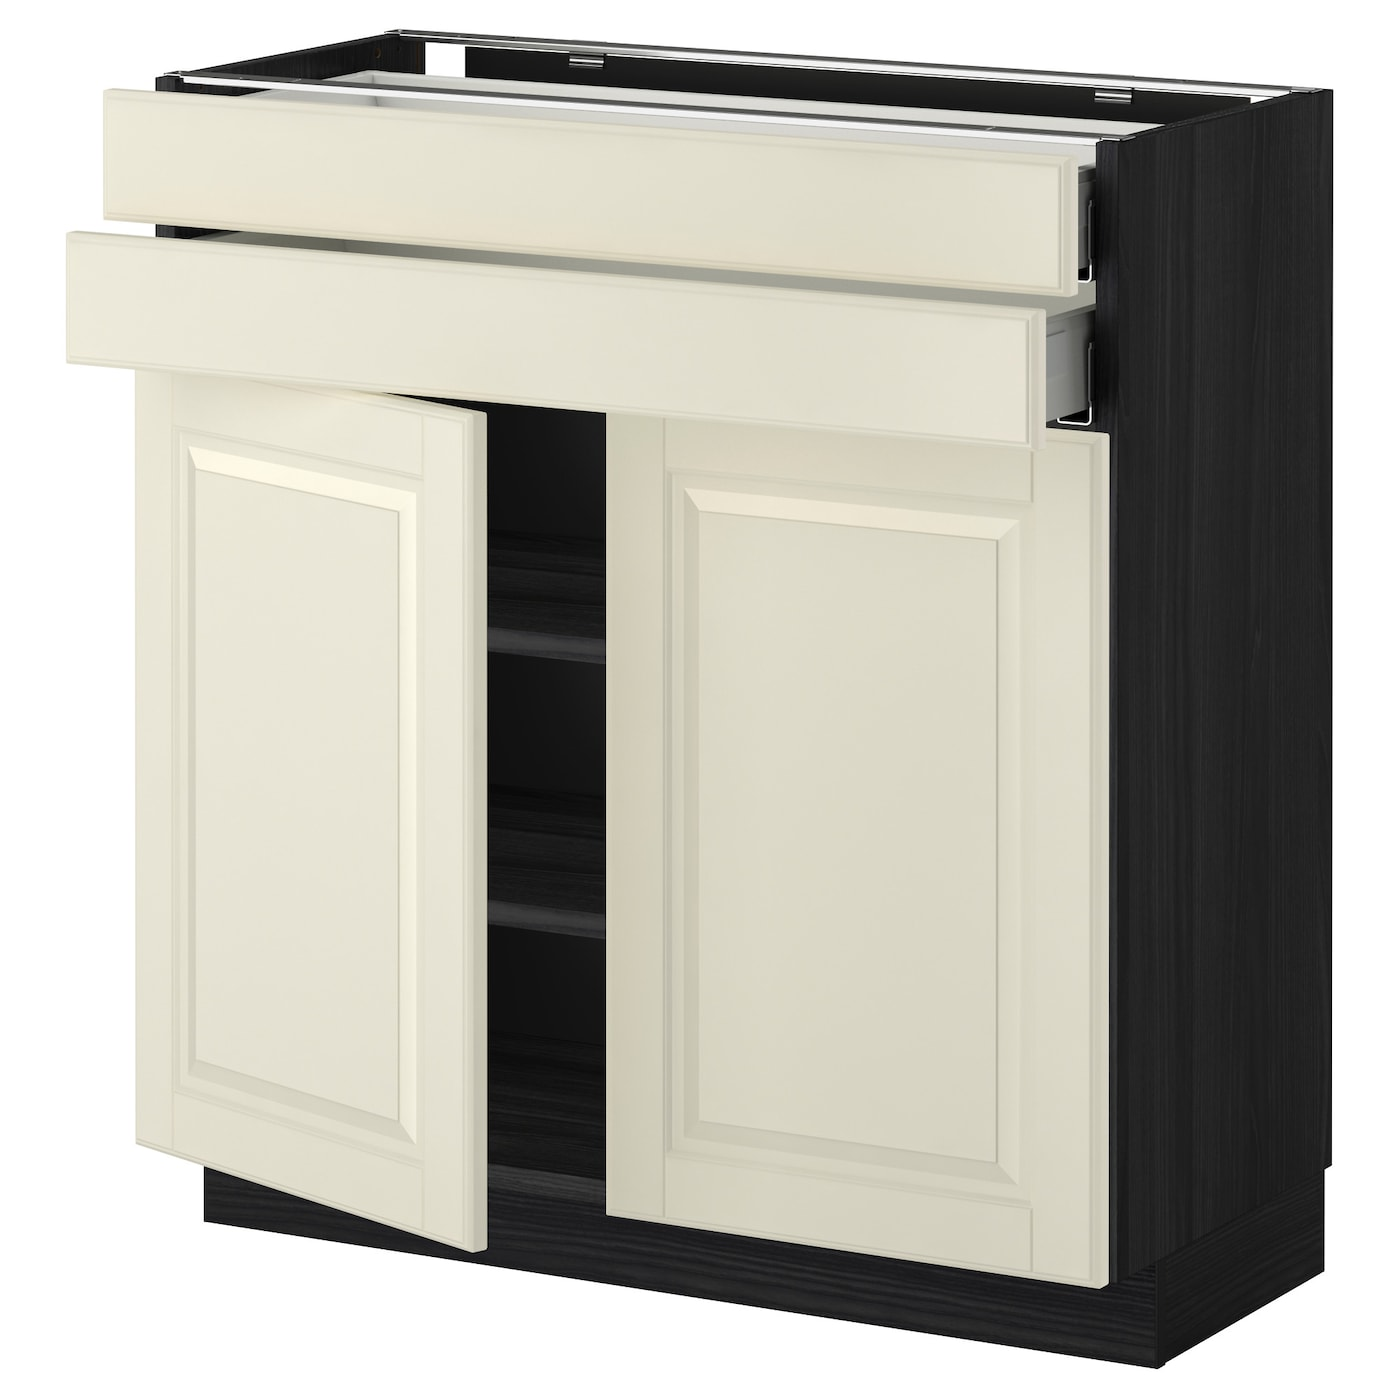 black base kitchen cabinets metod maximera base cabinet w 2 doors 2 drawers black 12317